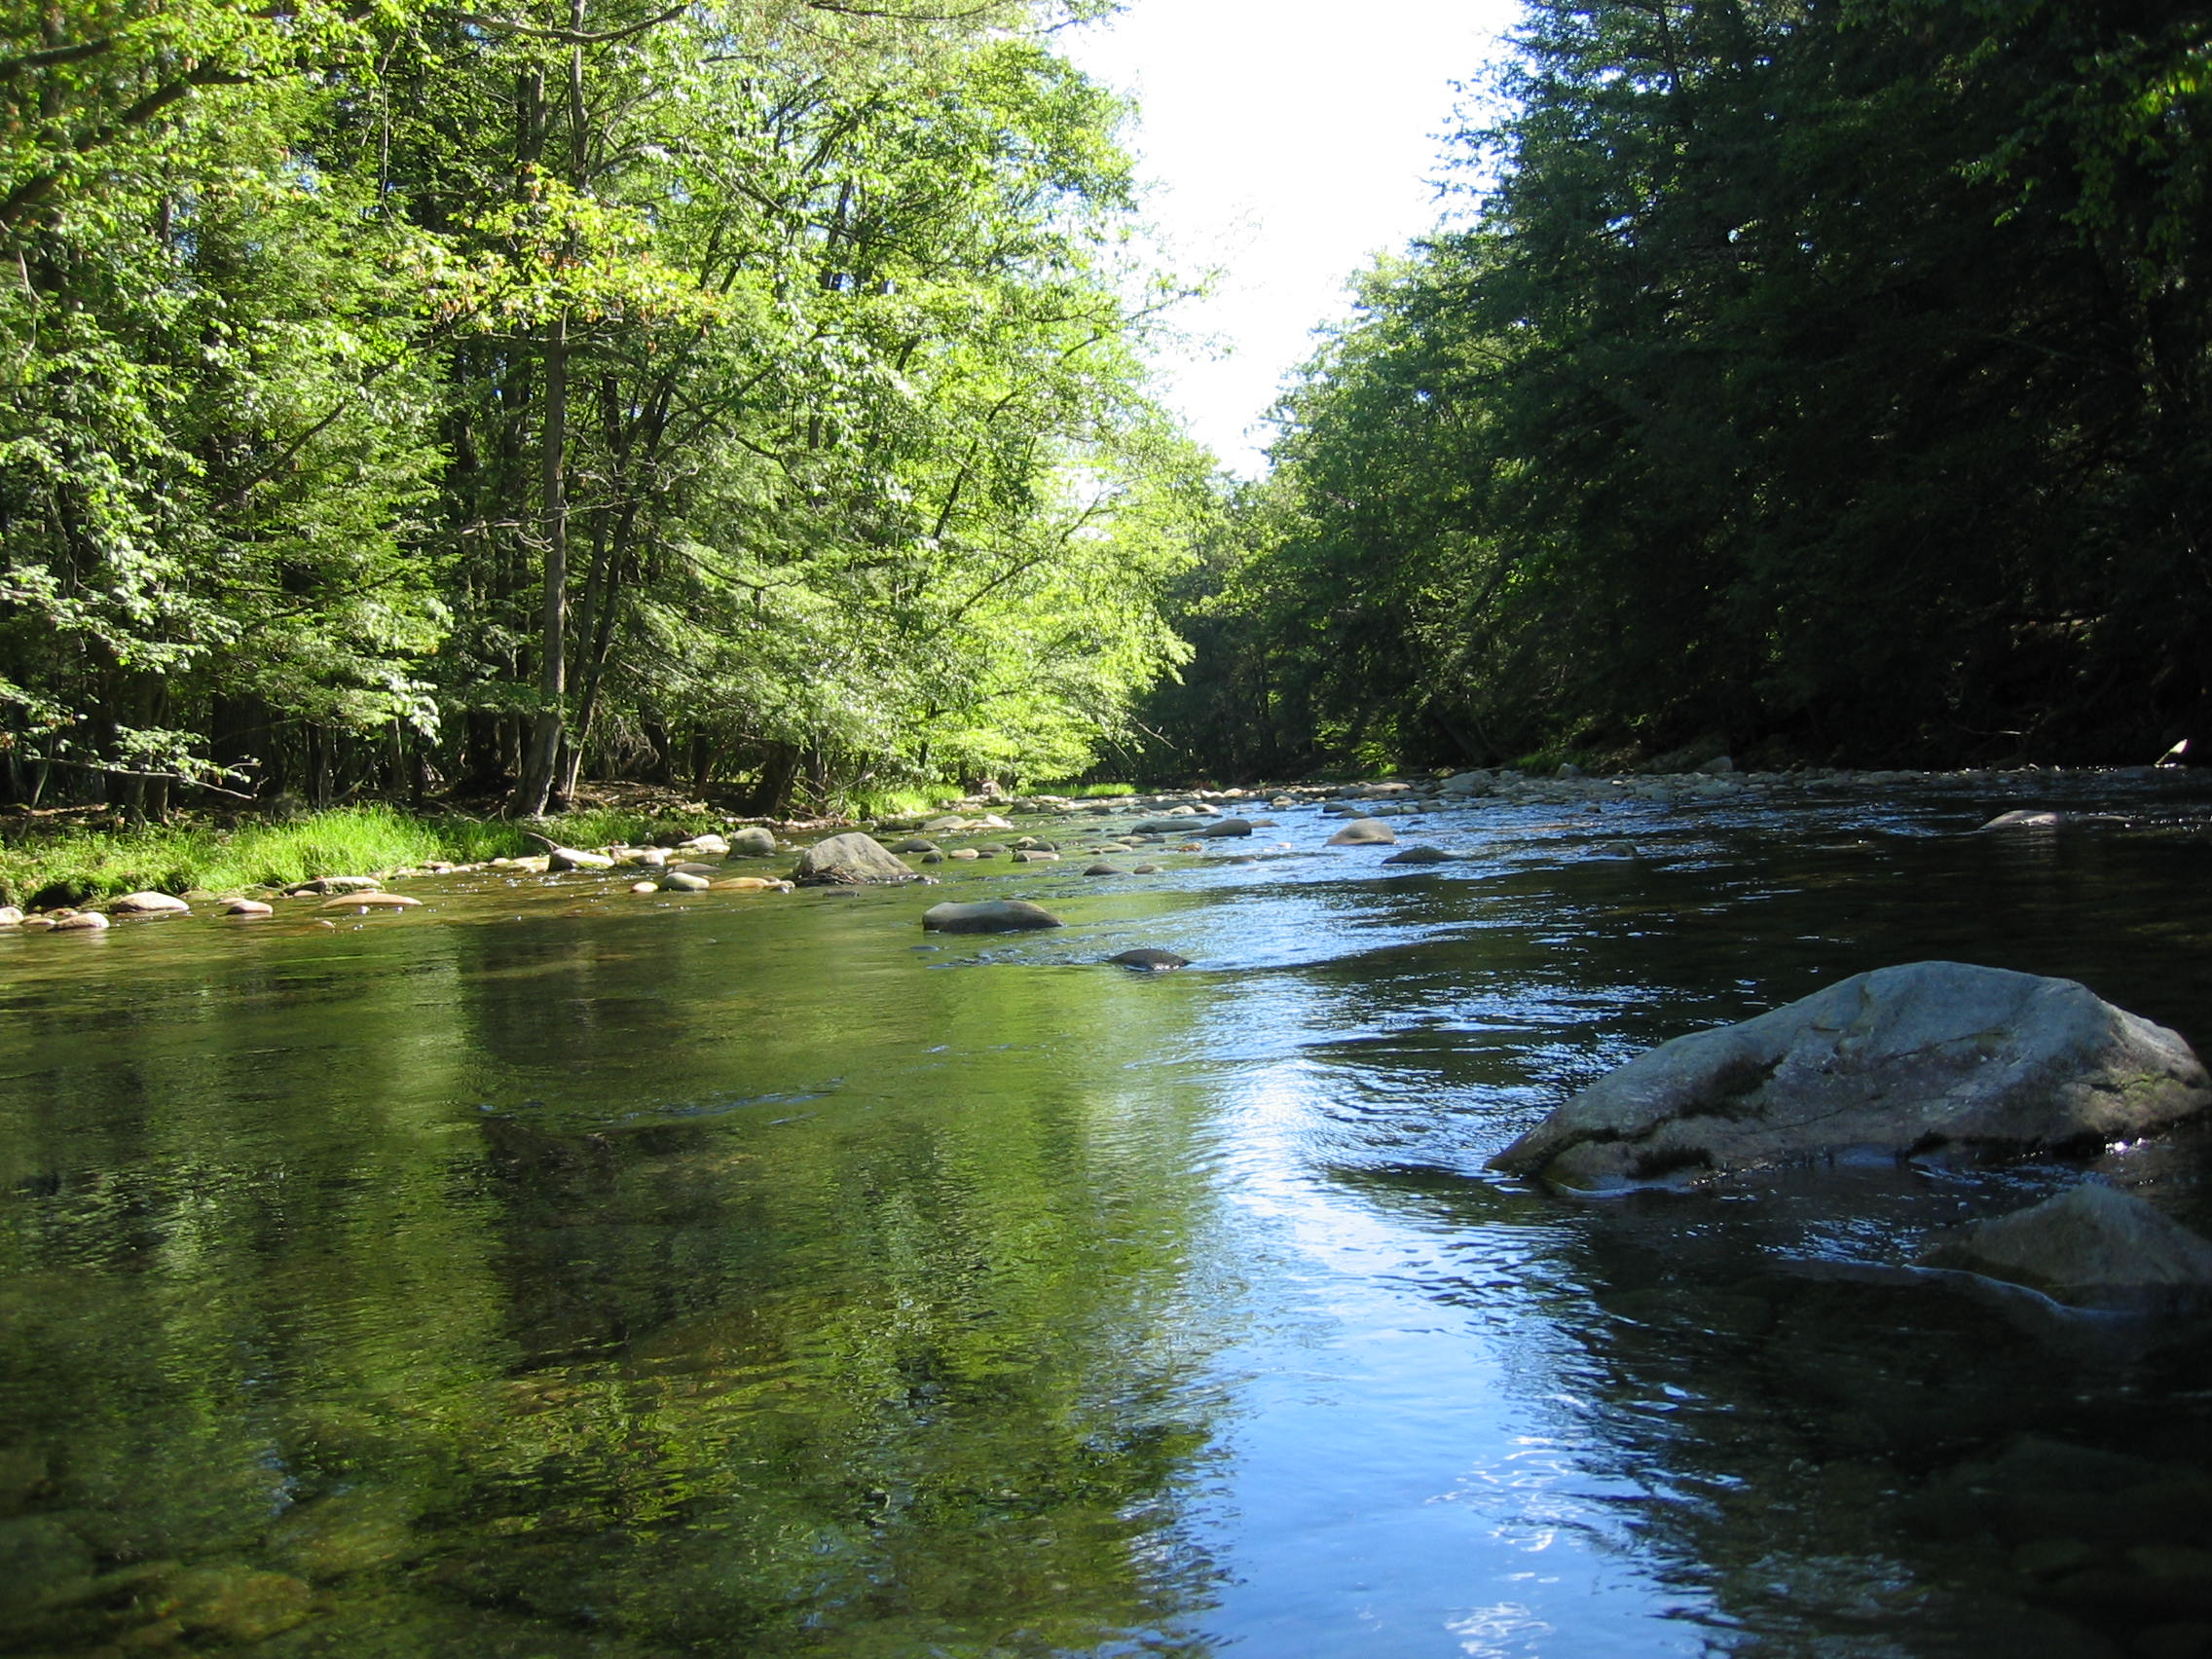 The headwaters of the Neversink River, Claryville, NY.